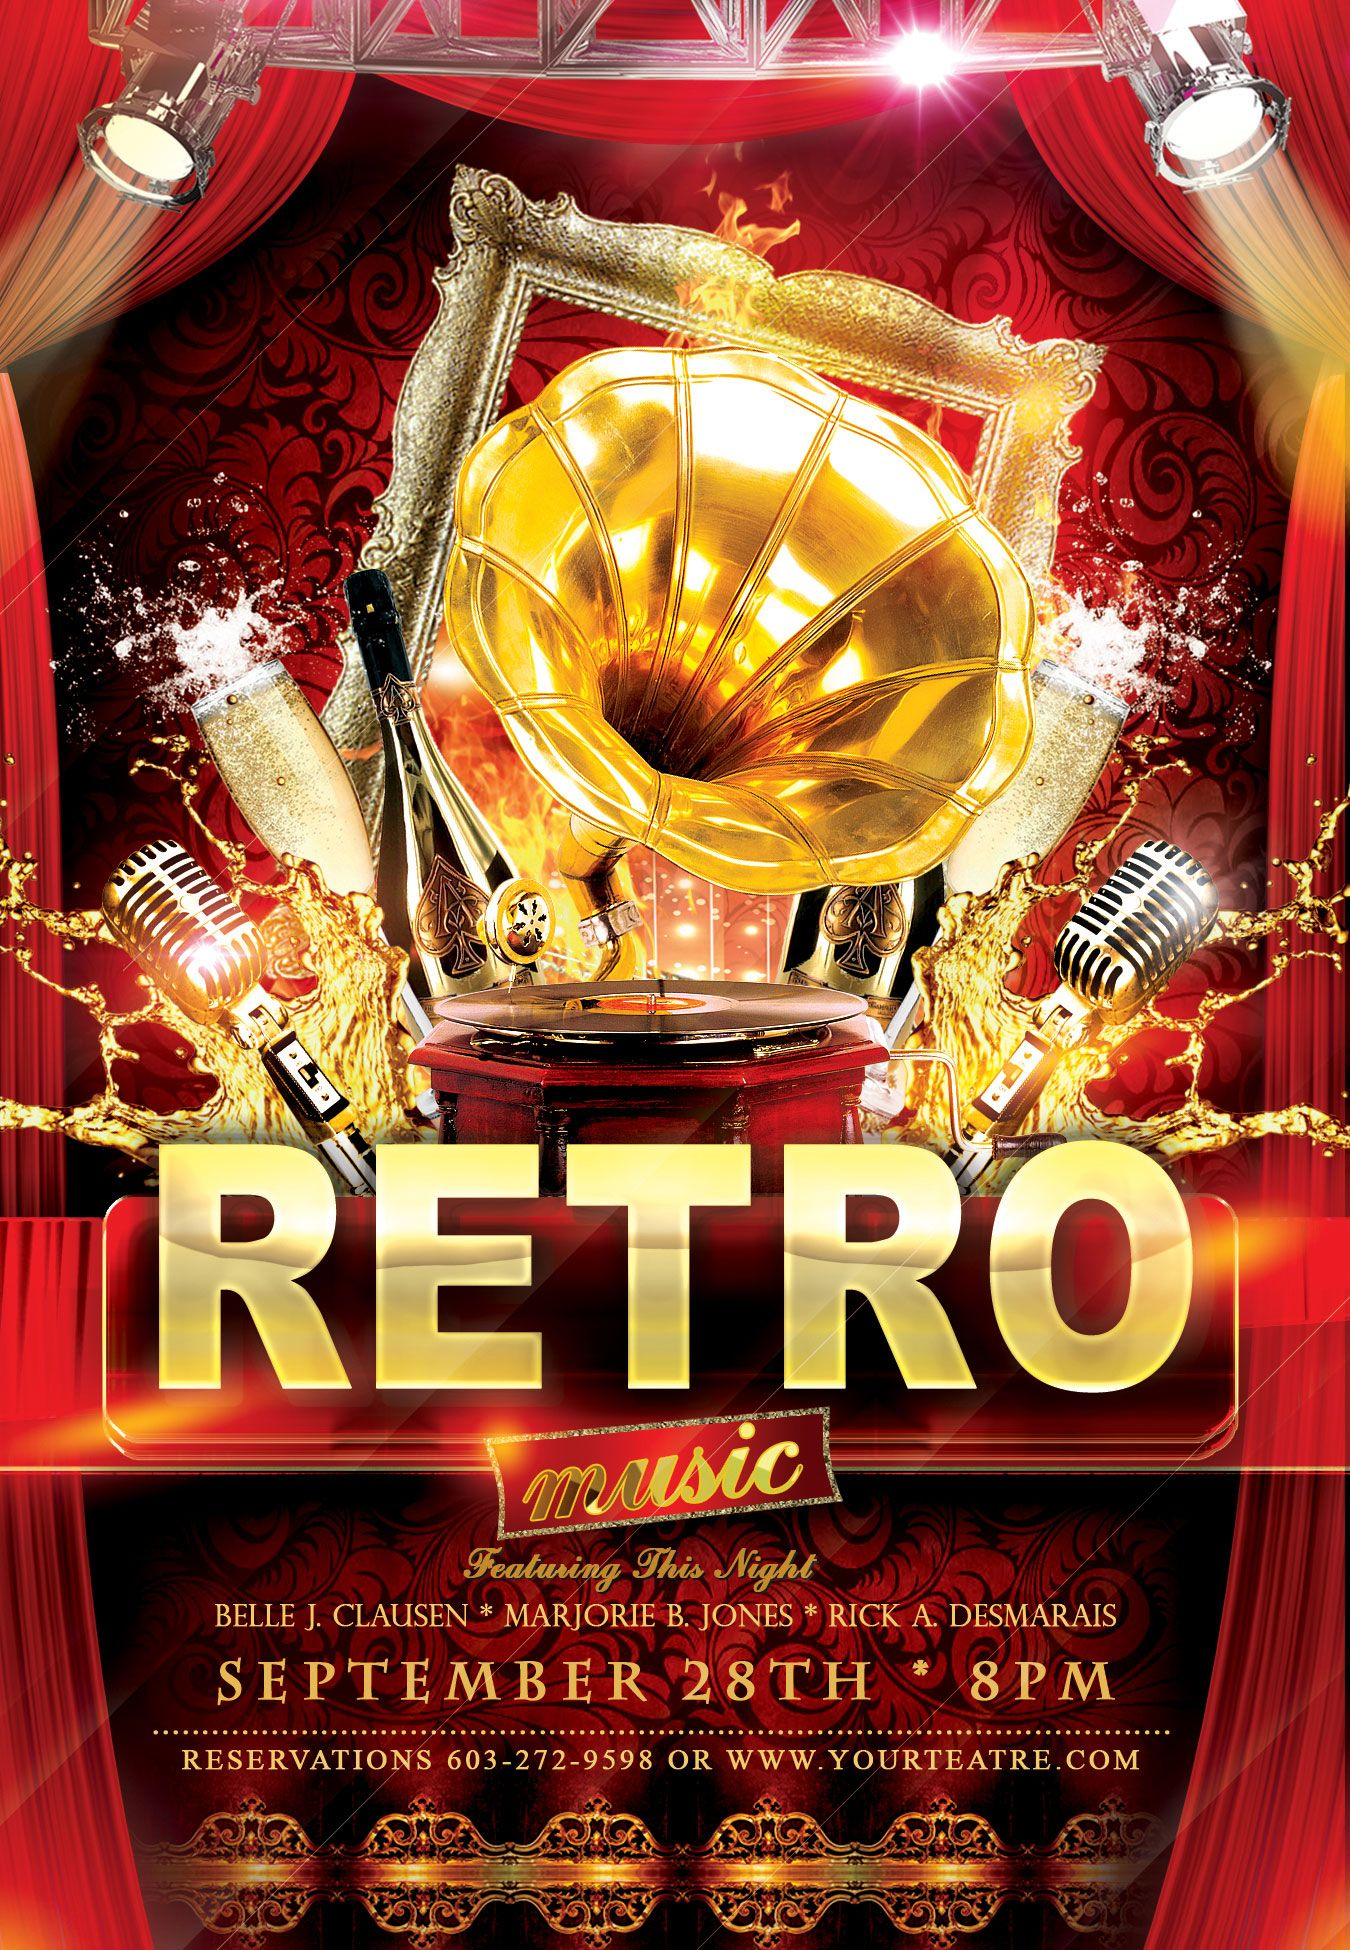 Free Retro Flyer Psd Template  StyleflyersCom Are You A Part Of